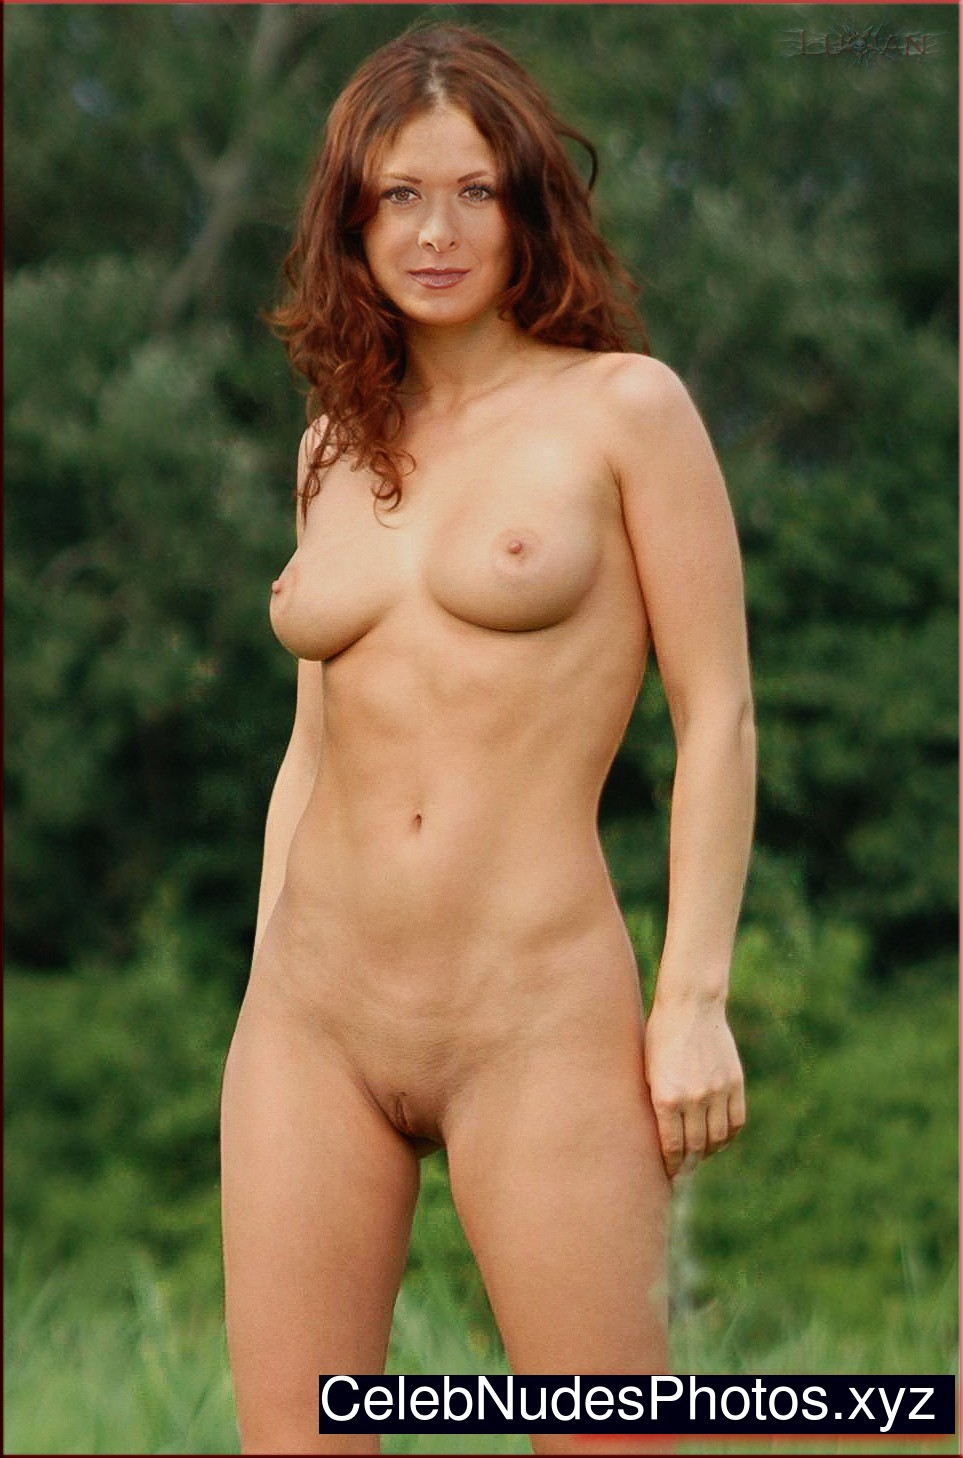 Consider, that debra messing nude images phrase, matchless)))